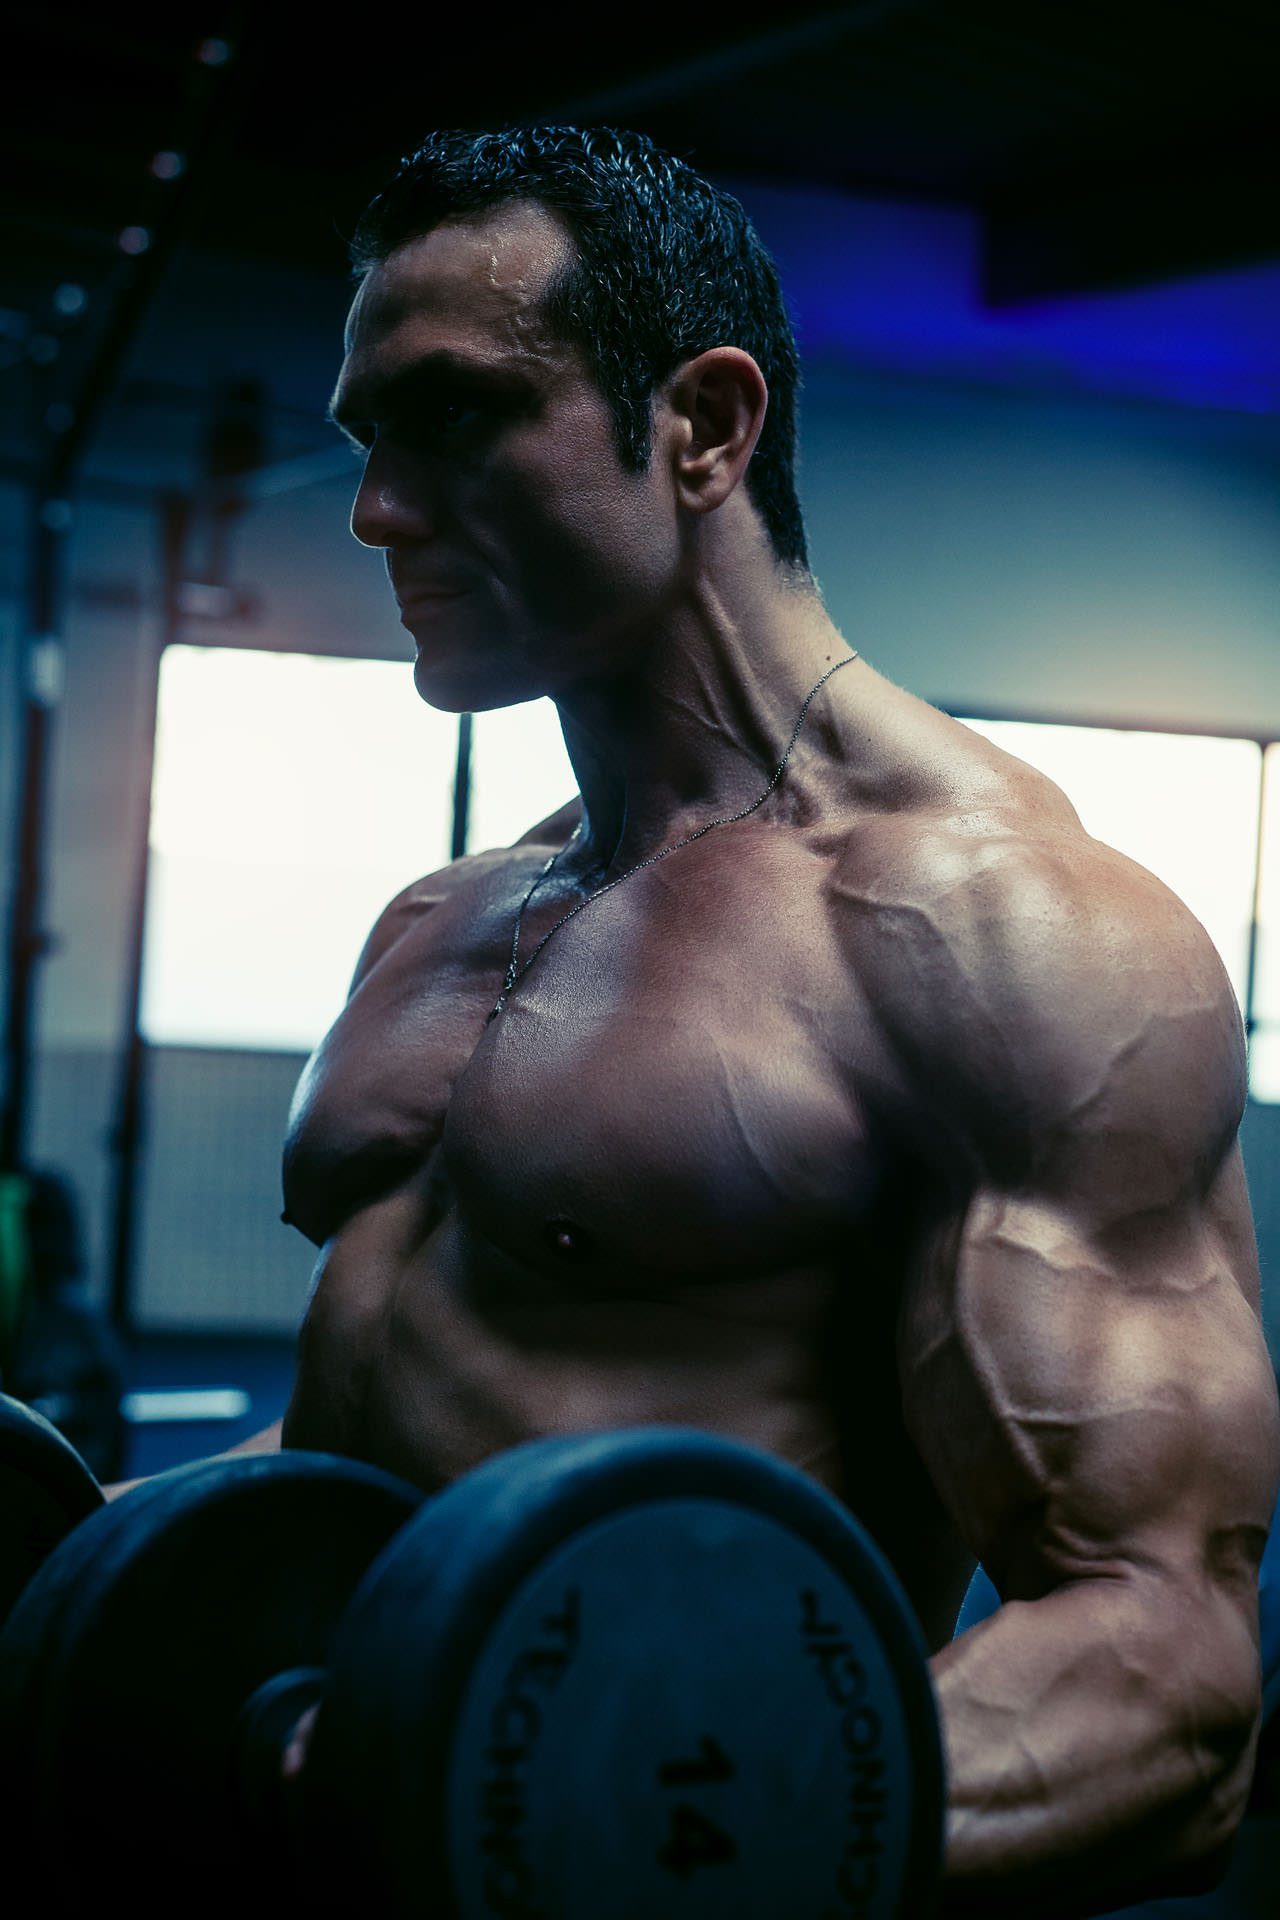 2017-02-24 - Enzo Foukra - MyMuscle - FitnessPark - 4390 - 1920px